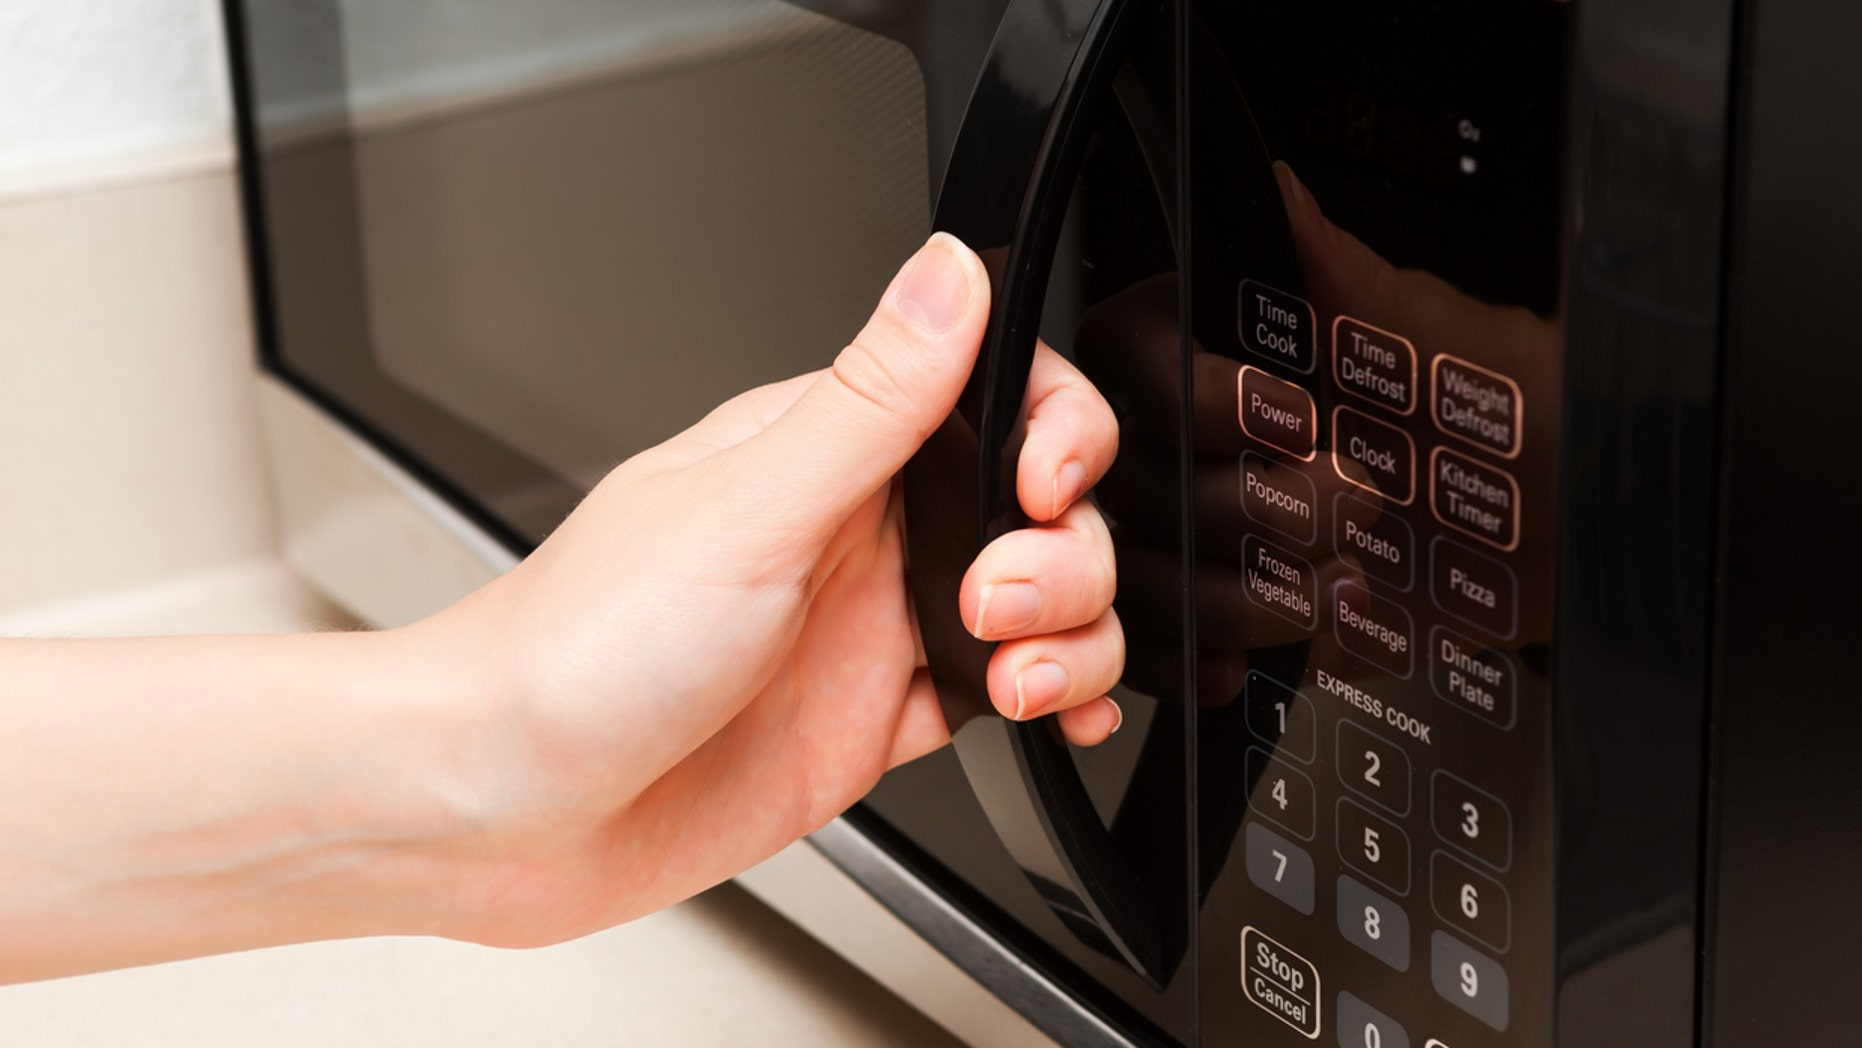 A microwave does not cook food evenly, which often means that any bacteria present in the reheated foods will survive.